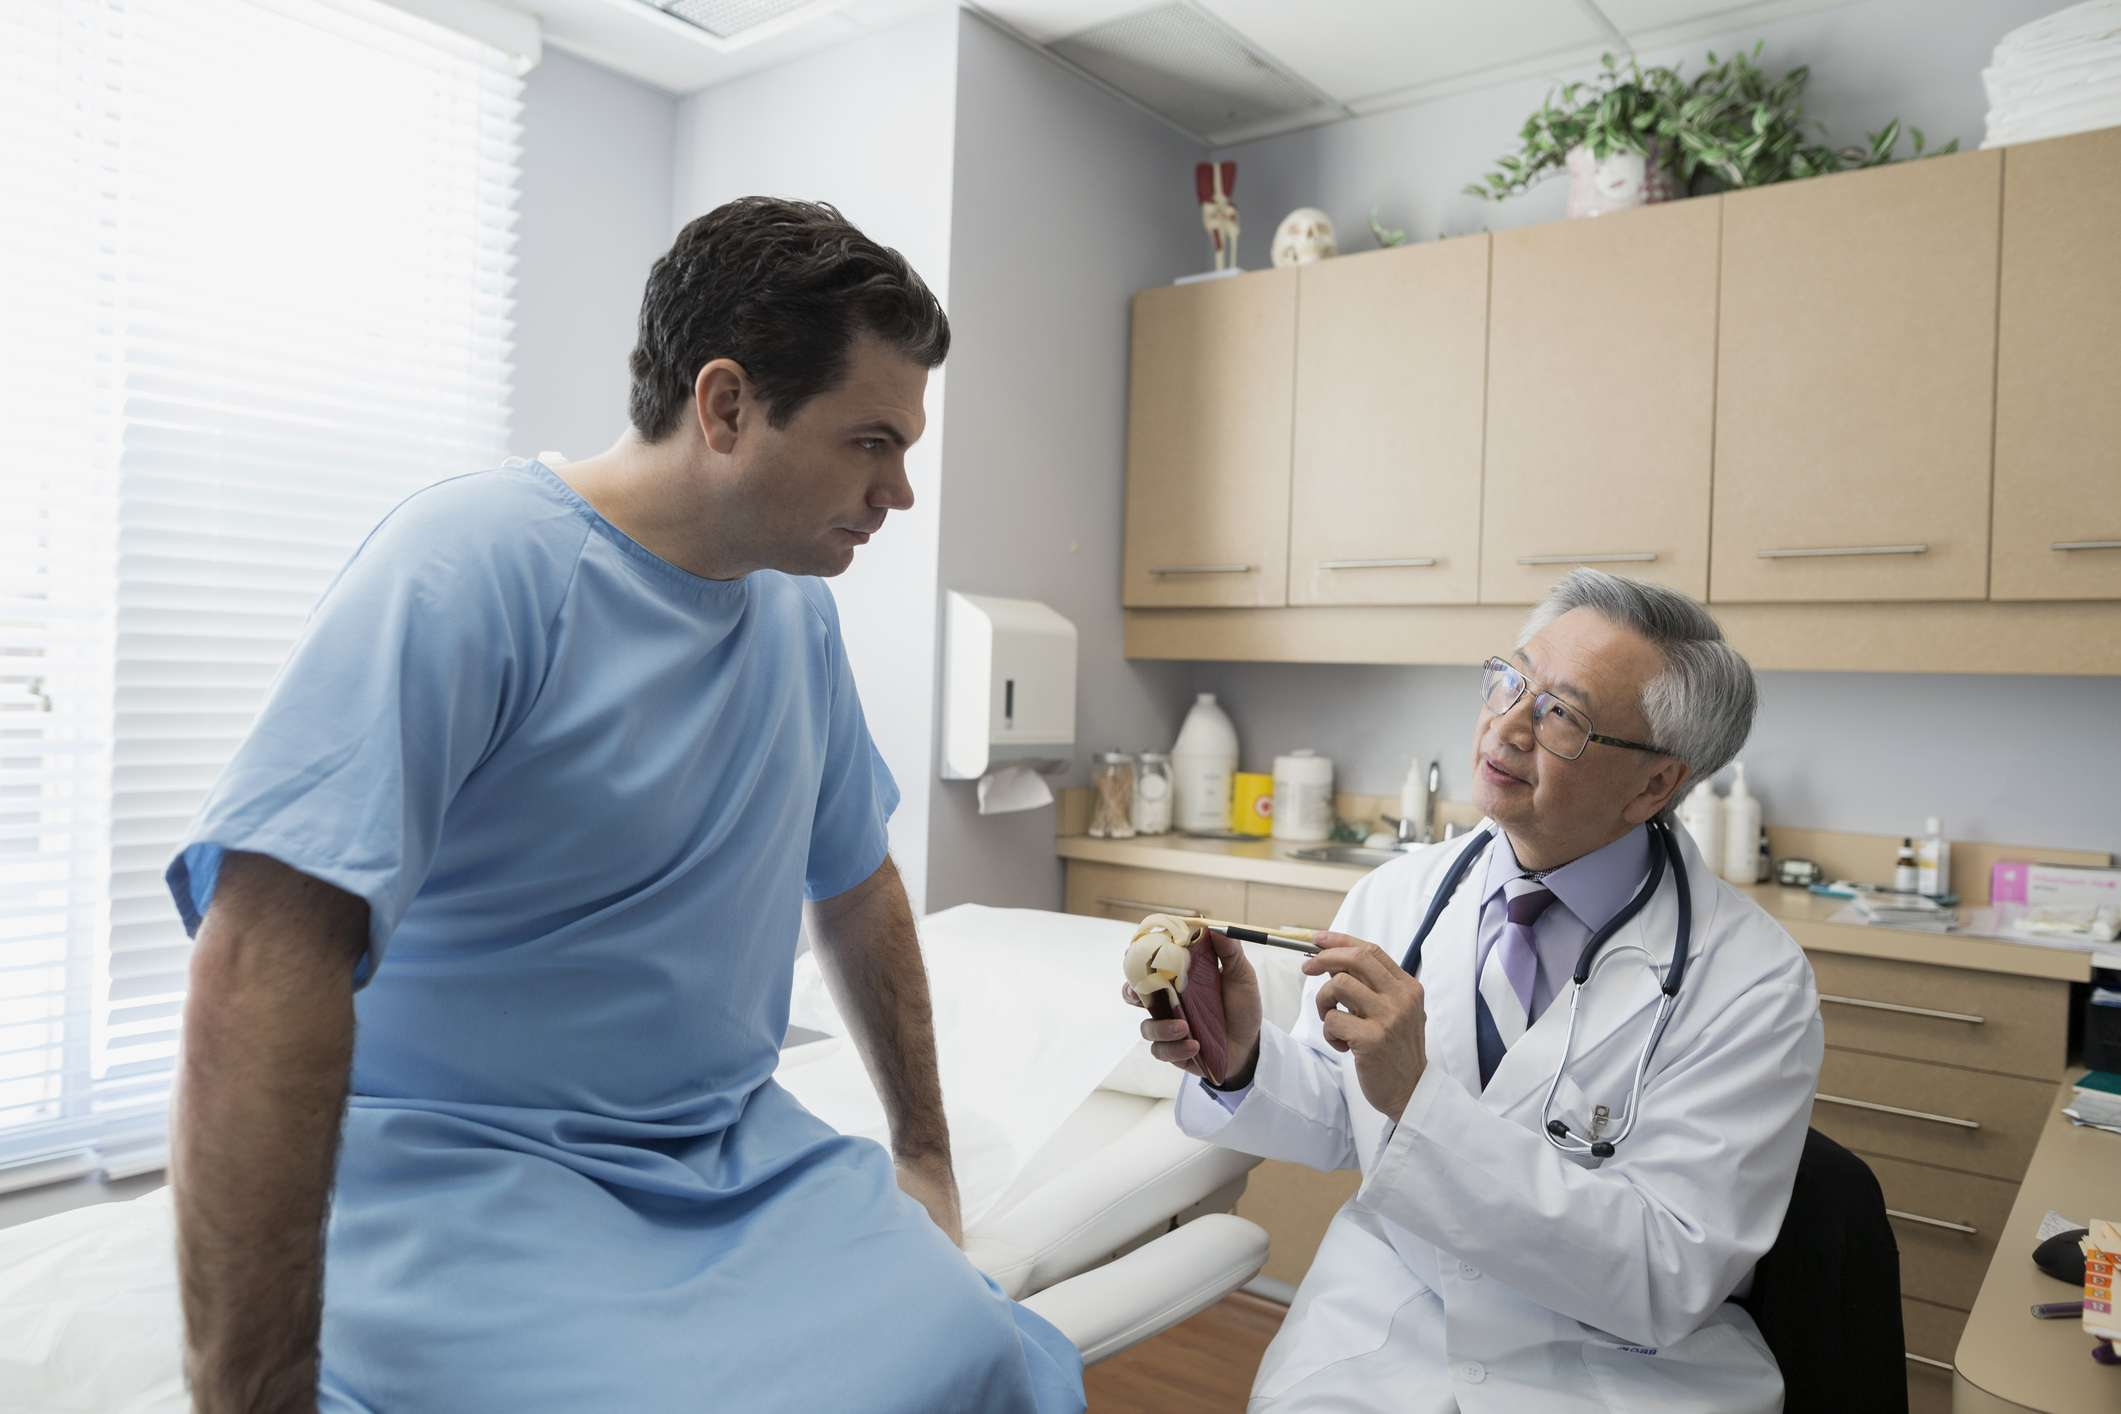 A doctor explaining a model to patient